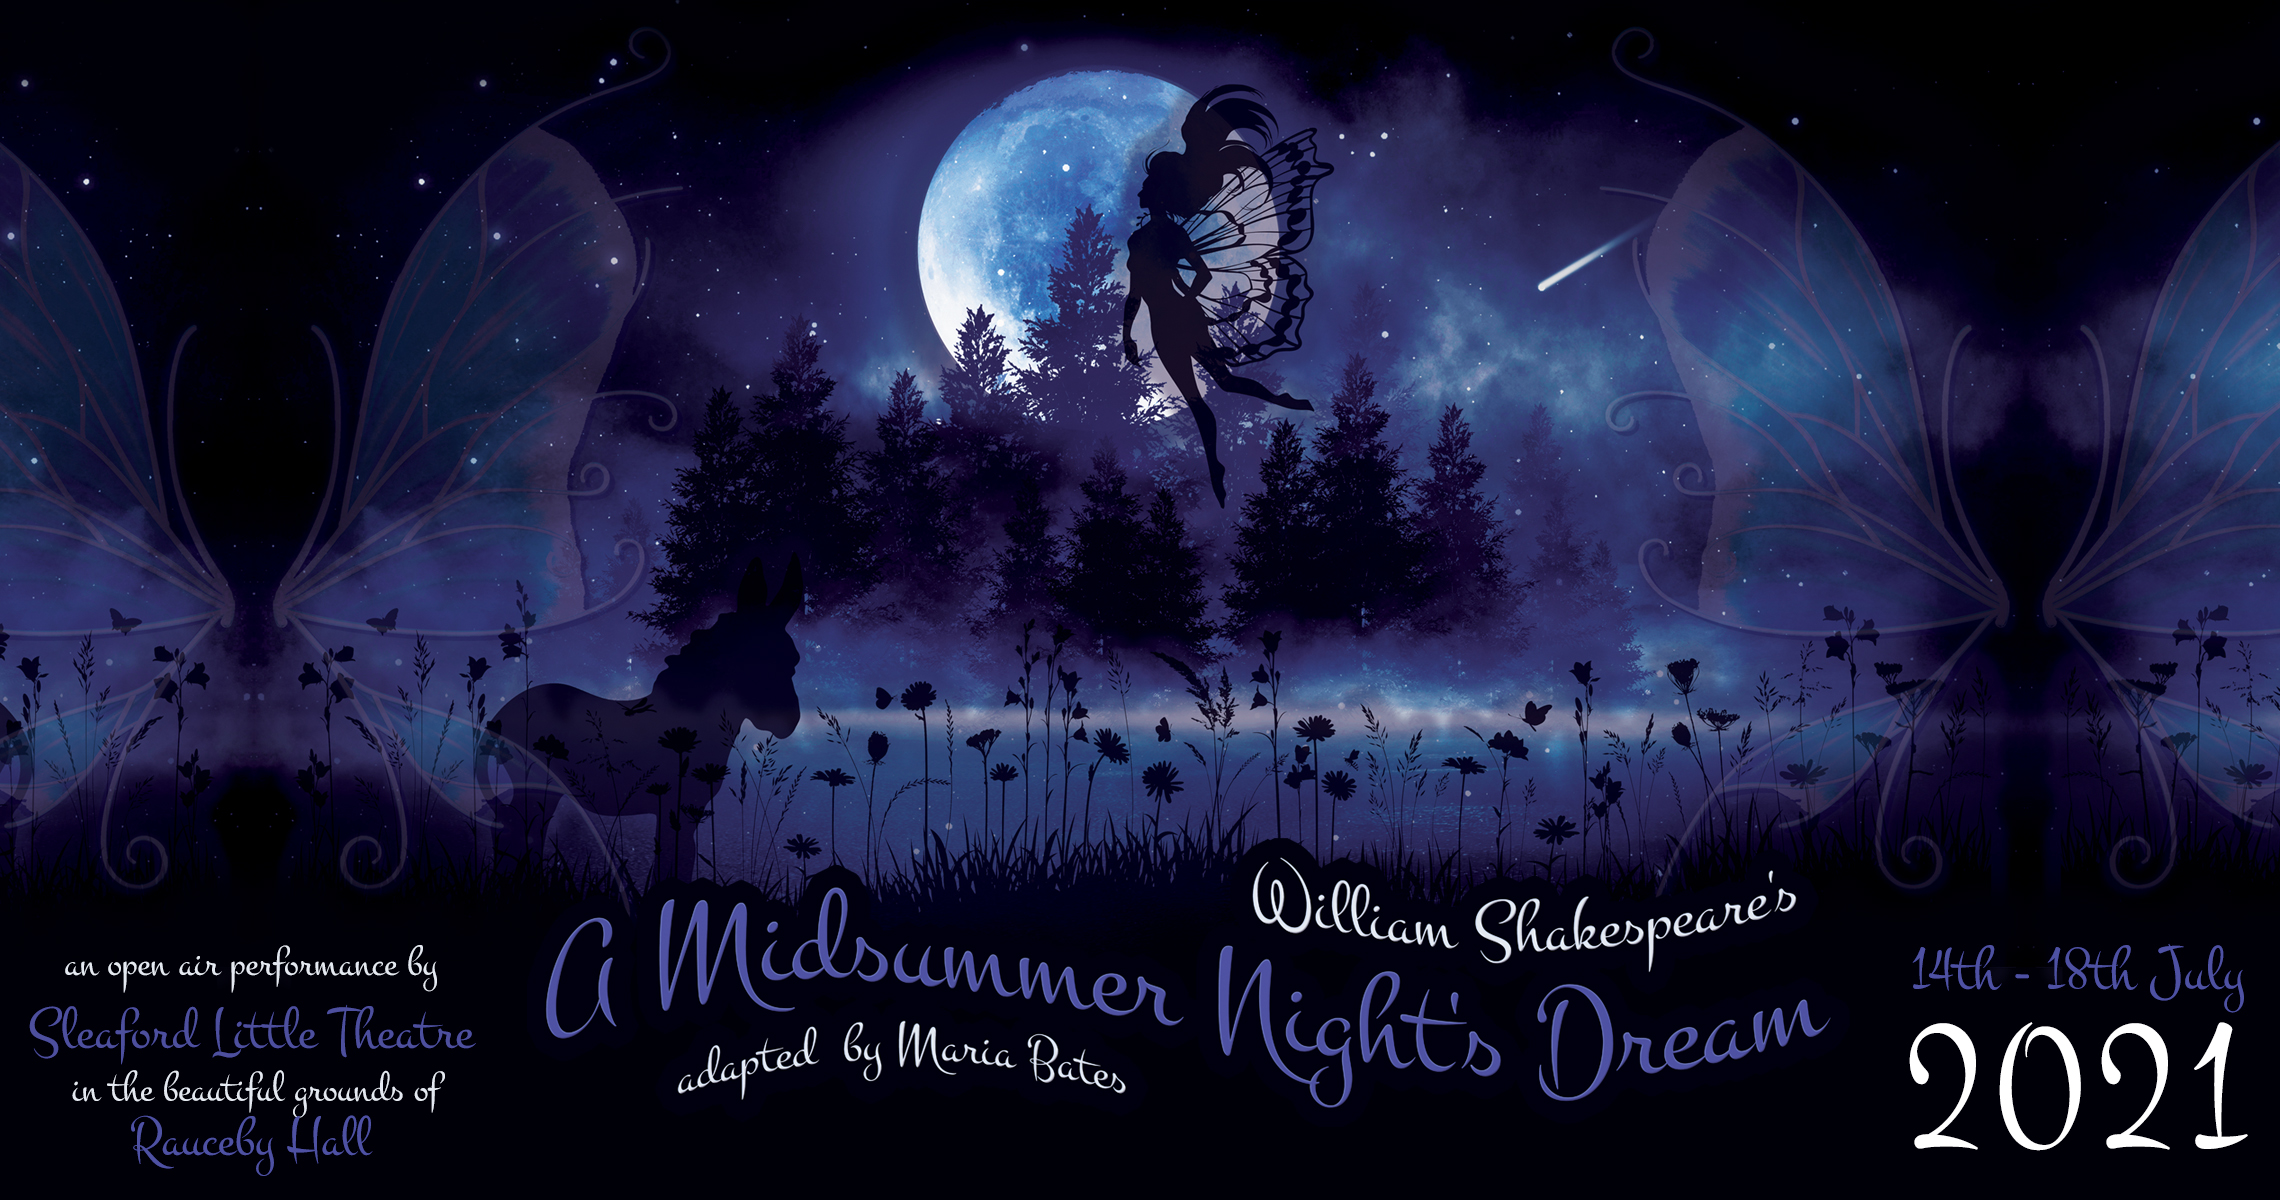 Outdoor production of A Midsummer Night's Dream planned for July 2021